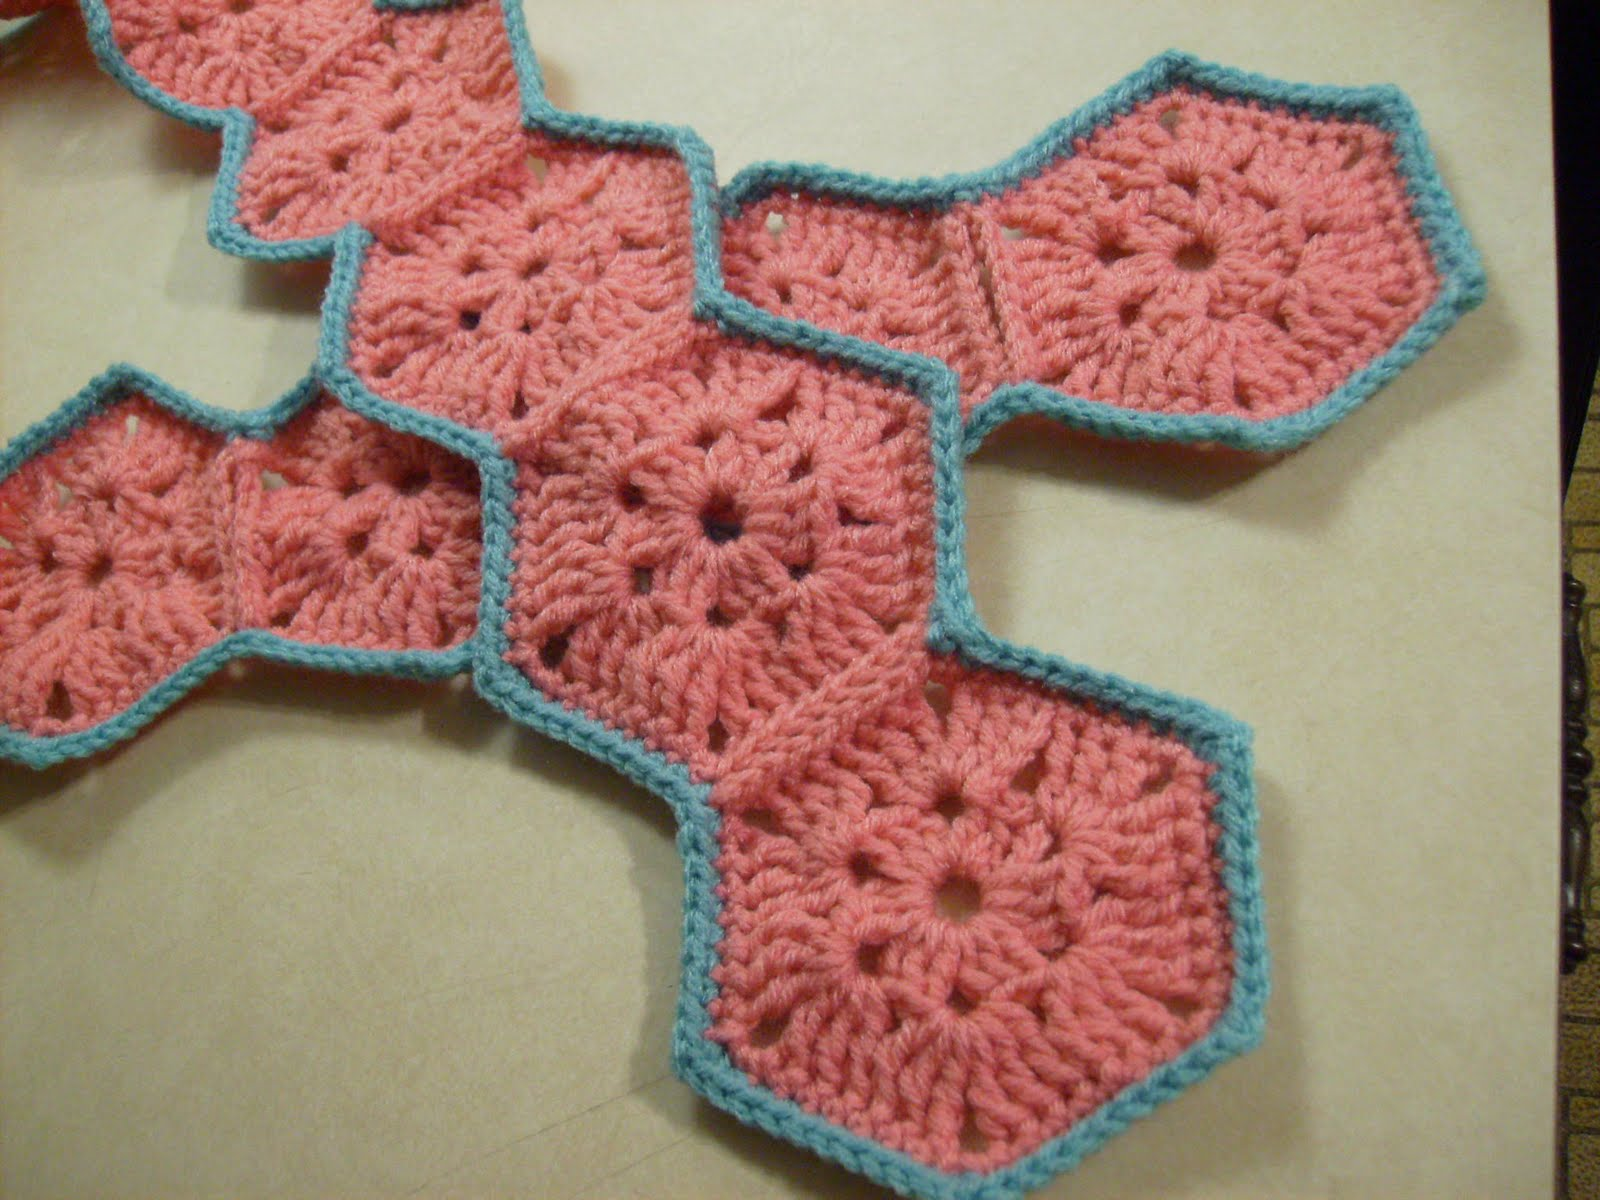 Crochet Patterns With Scrap Yarn : Email This BlogThis! Share to Twitter Share to Facebook Share to ...